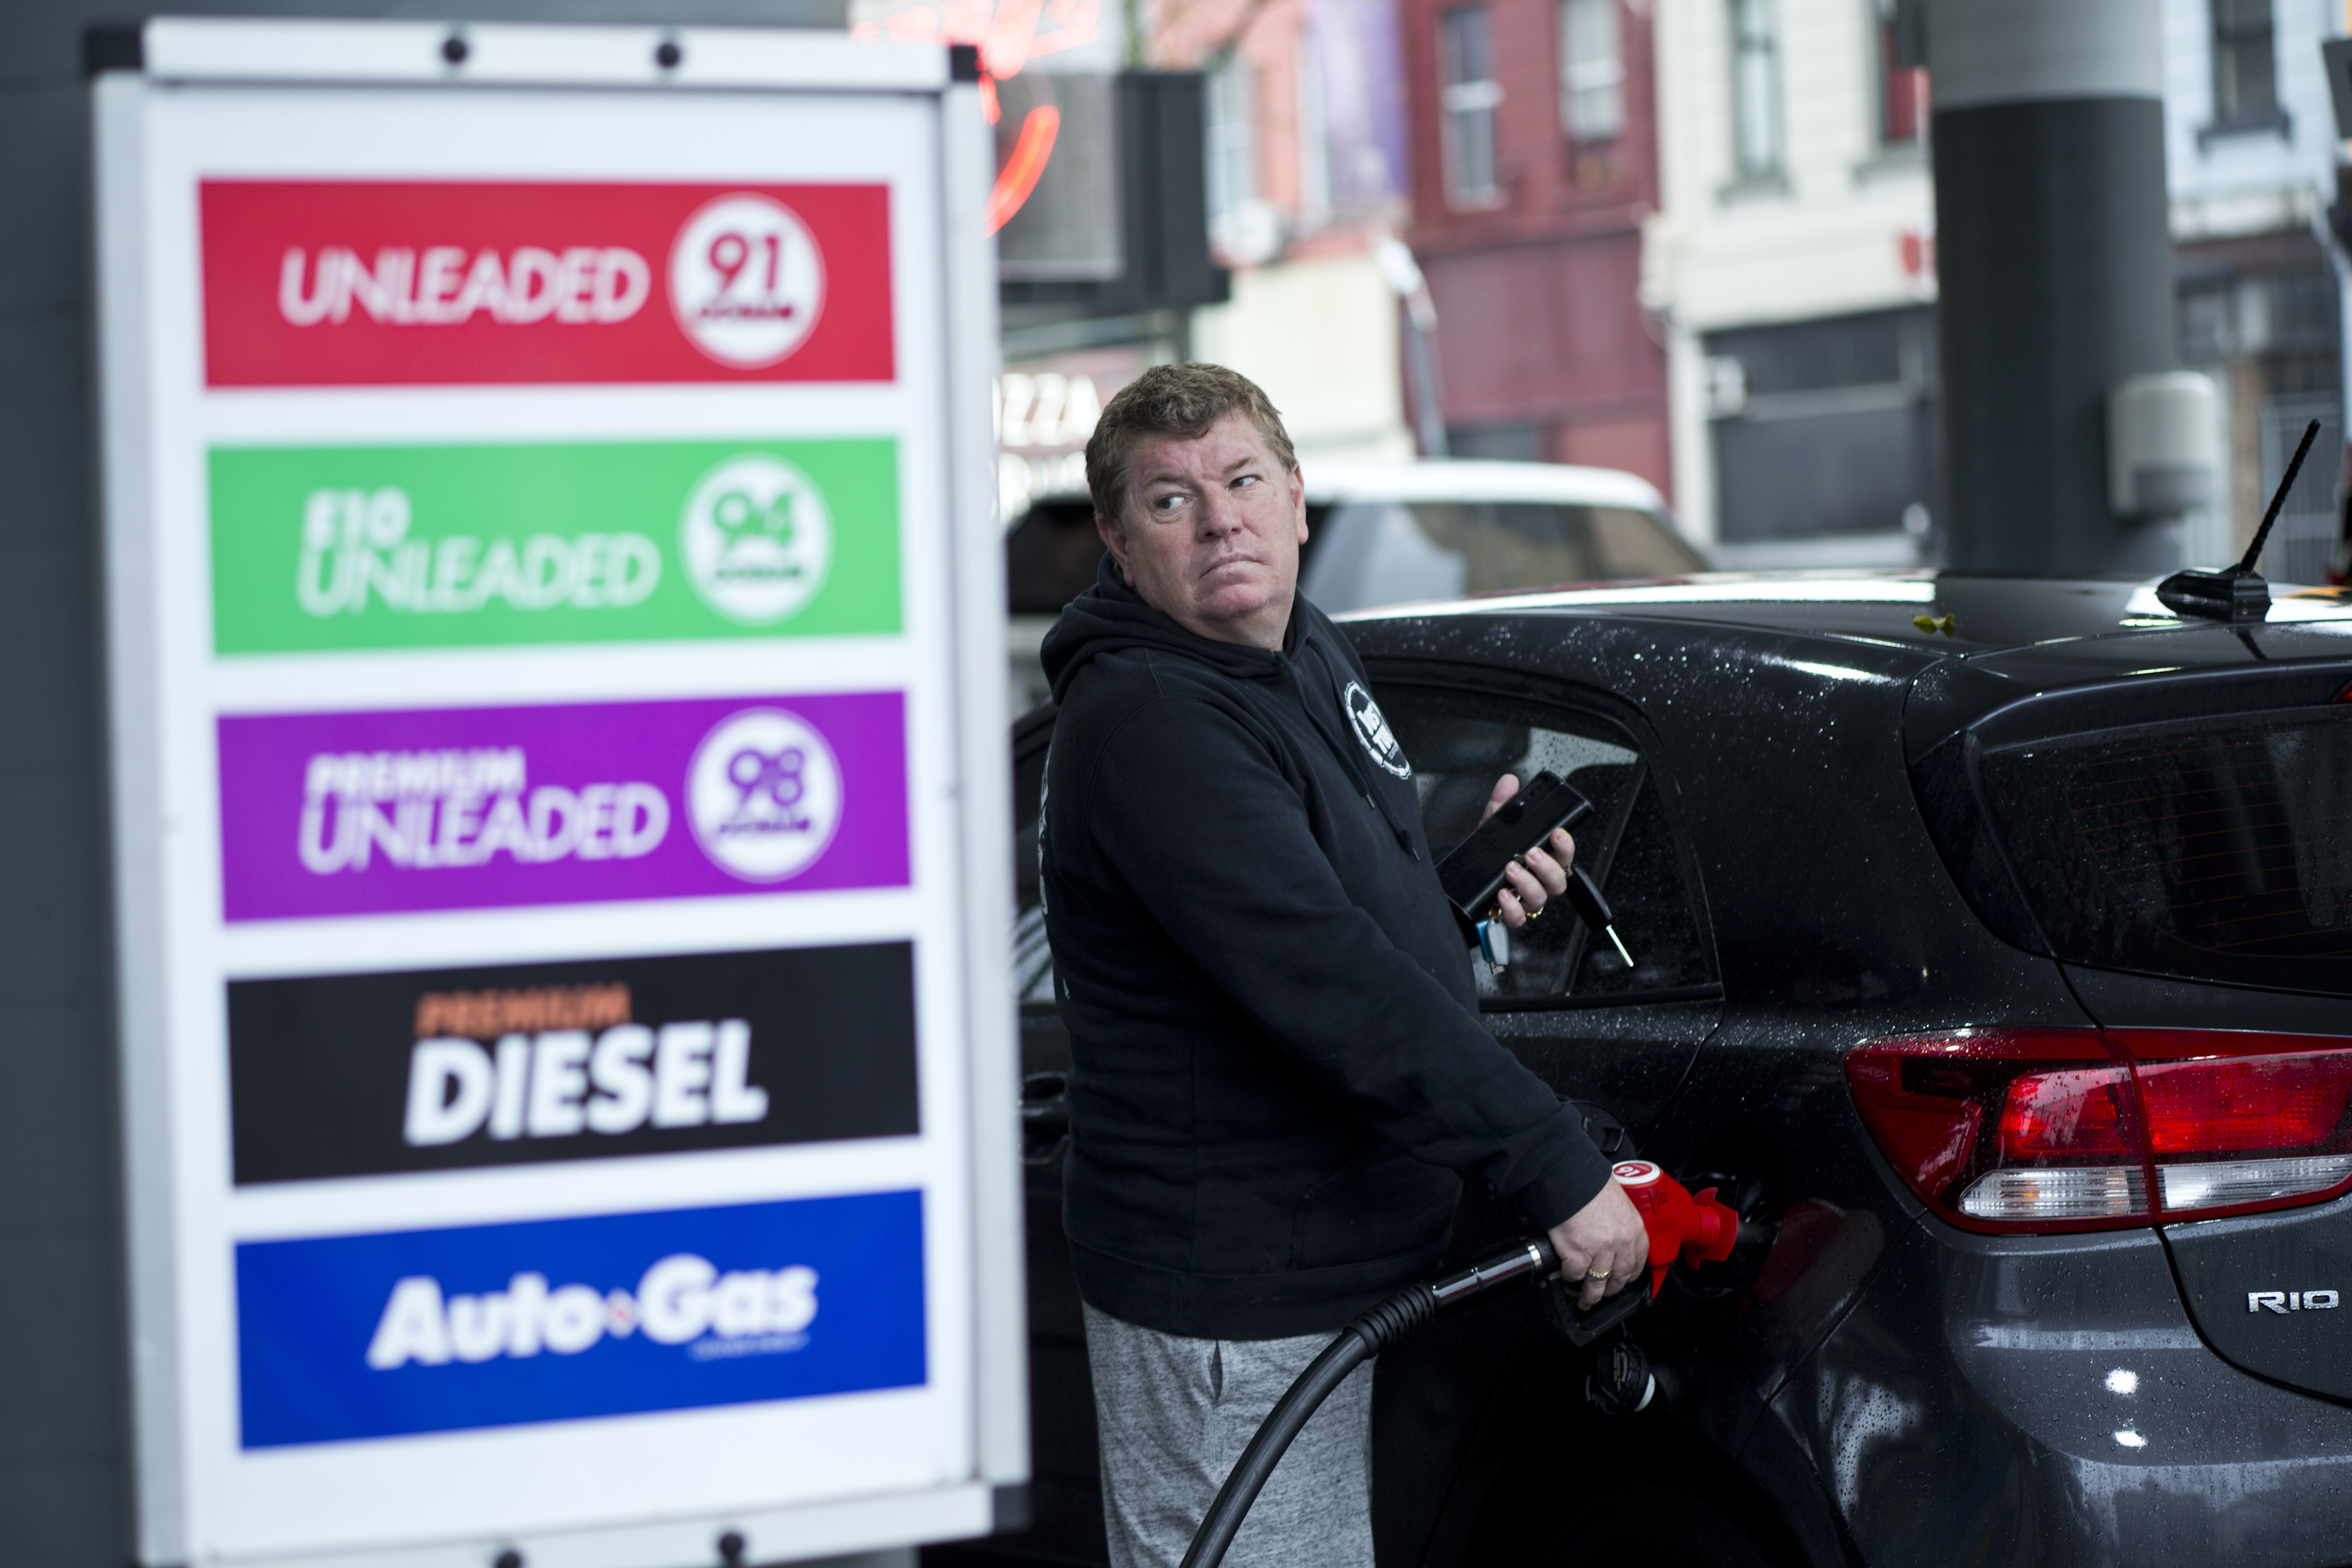 Big chain petrol more expensive than independent outlets